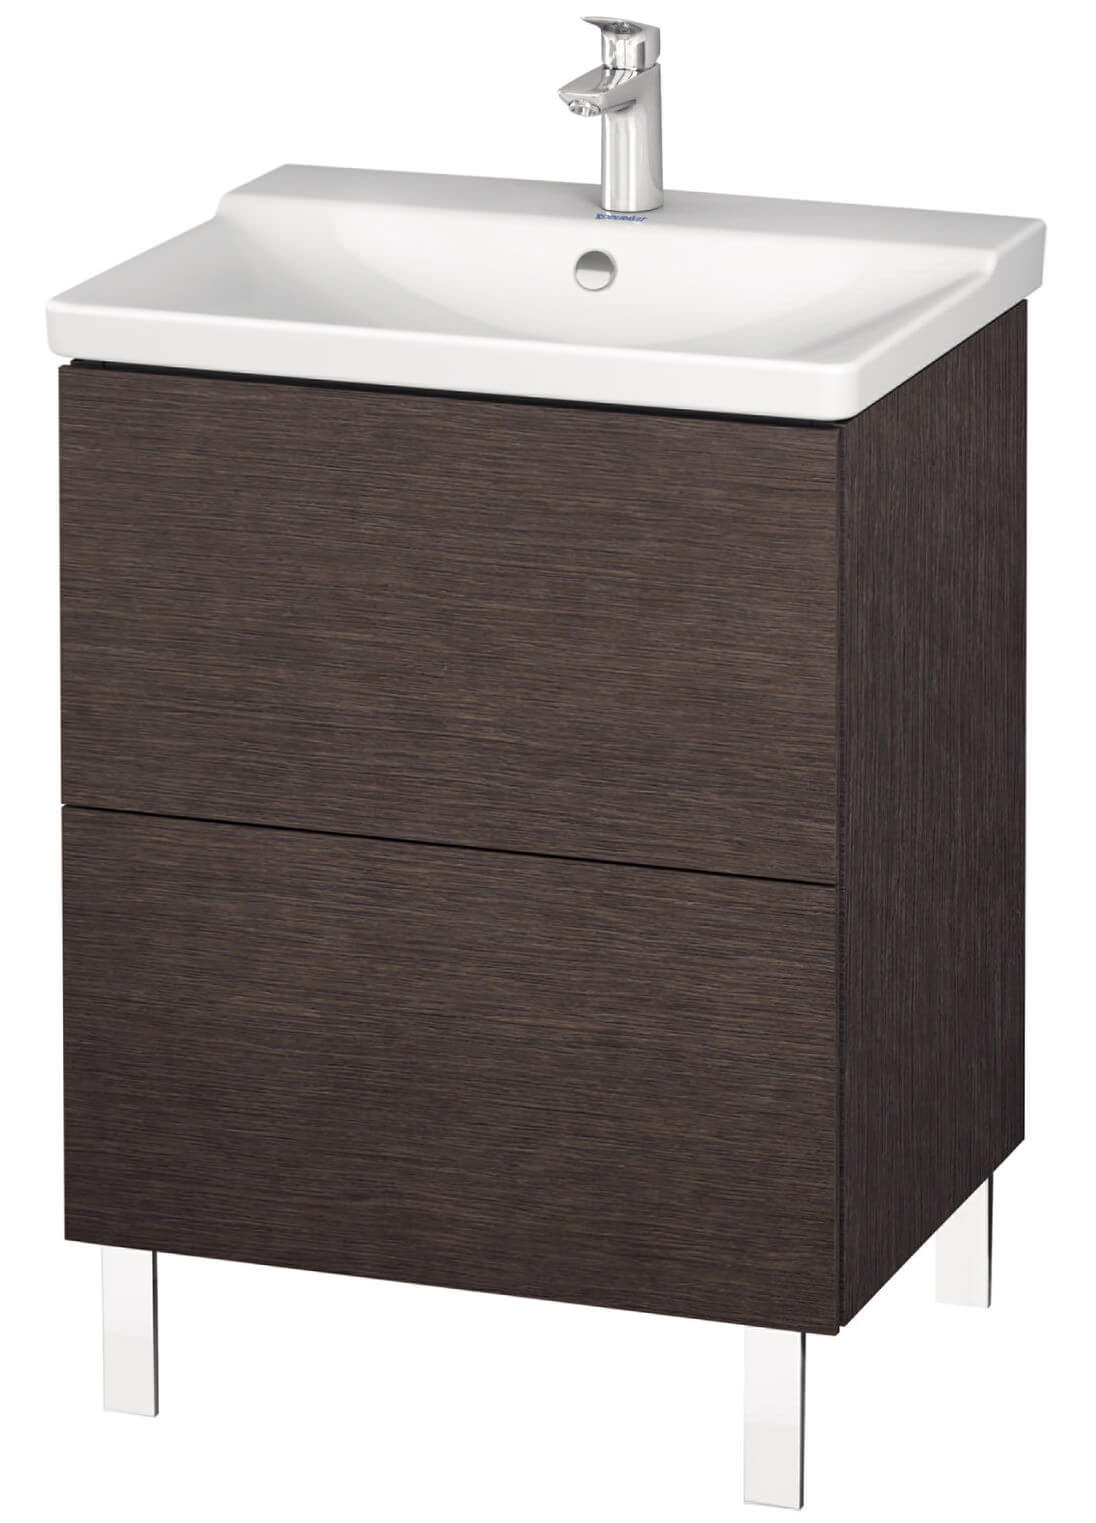 duravit l cube 620mm floor standing vanity unit. Black Bedroom Furniture Sets. Home Design Ideas